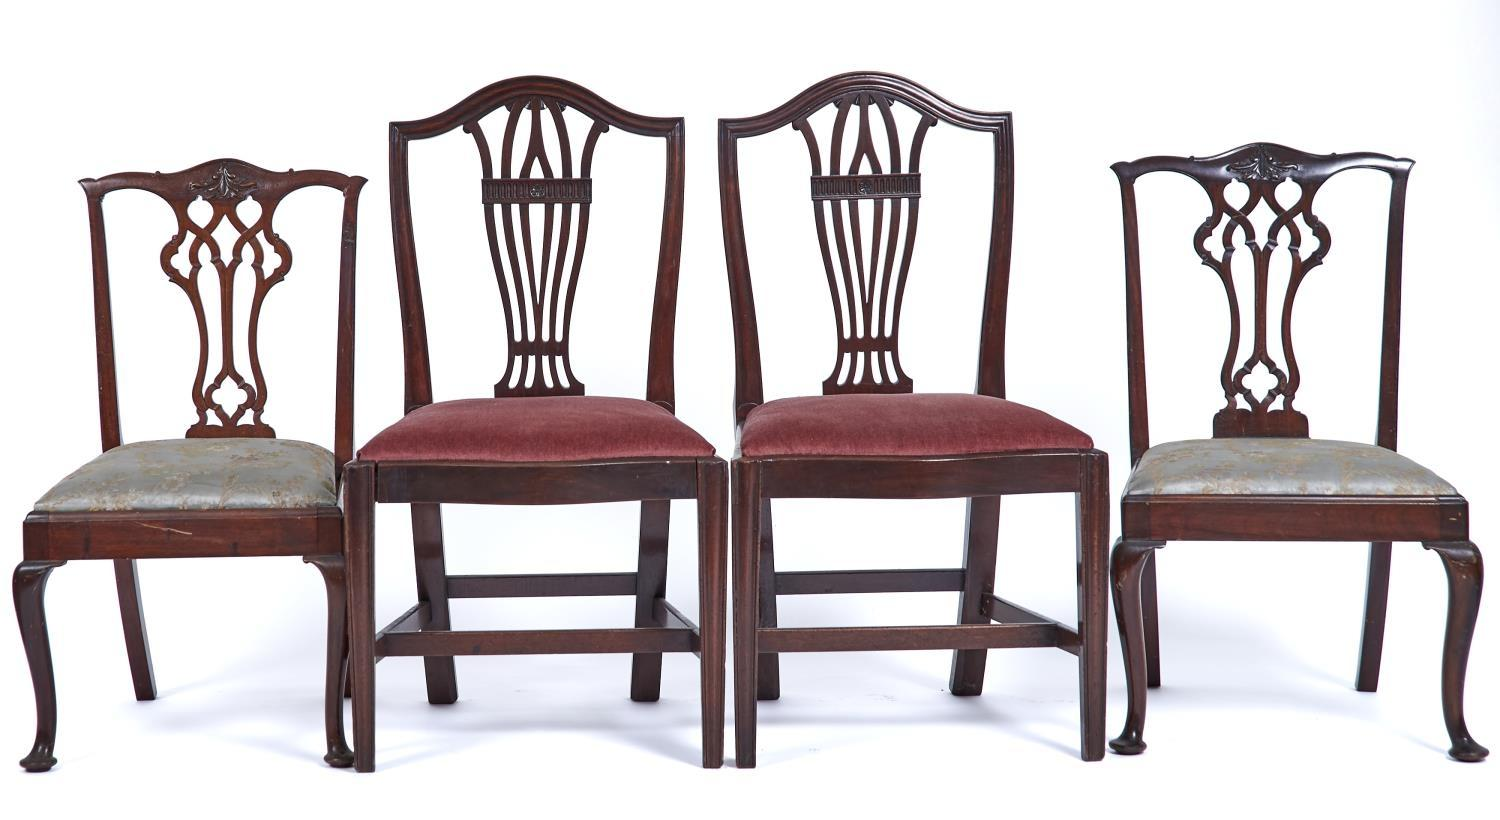 A PAIR OF MAHOGANY CAMEL BACK DINING CHAIRS, LATE 19TH / EARLY 20TH C, THE MOULDED TOPS AND FRAMES